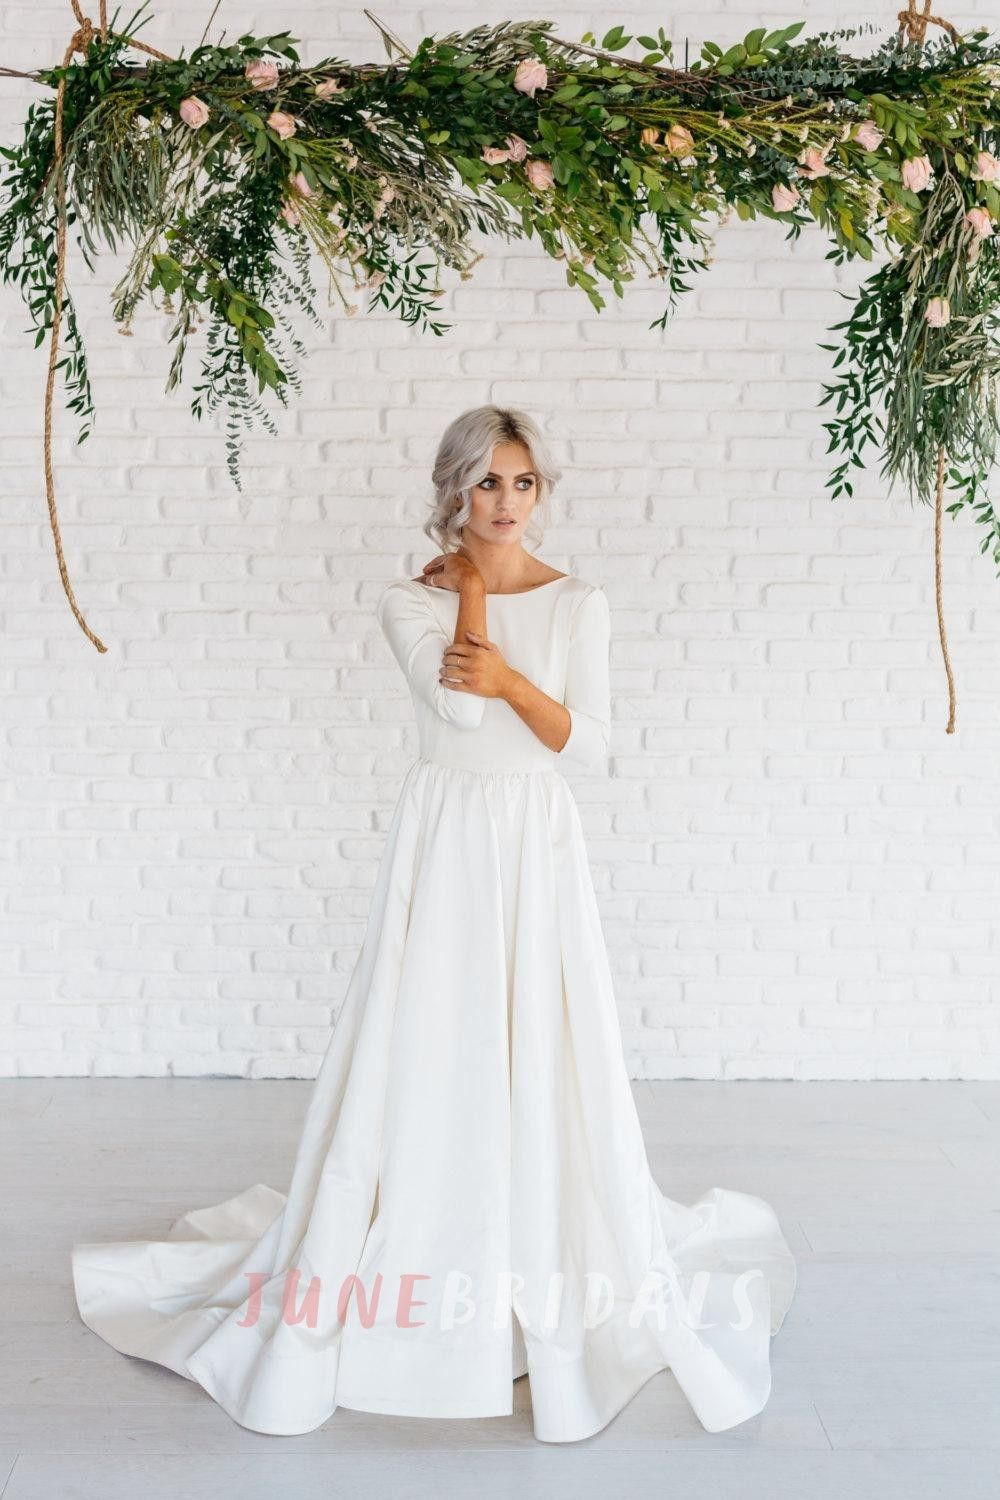 Modern simple long sleeve aline satin wedding dress with open back